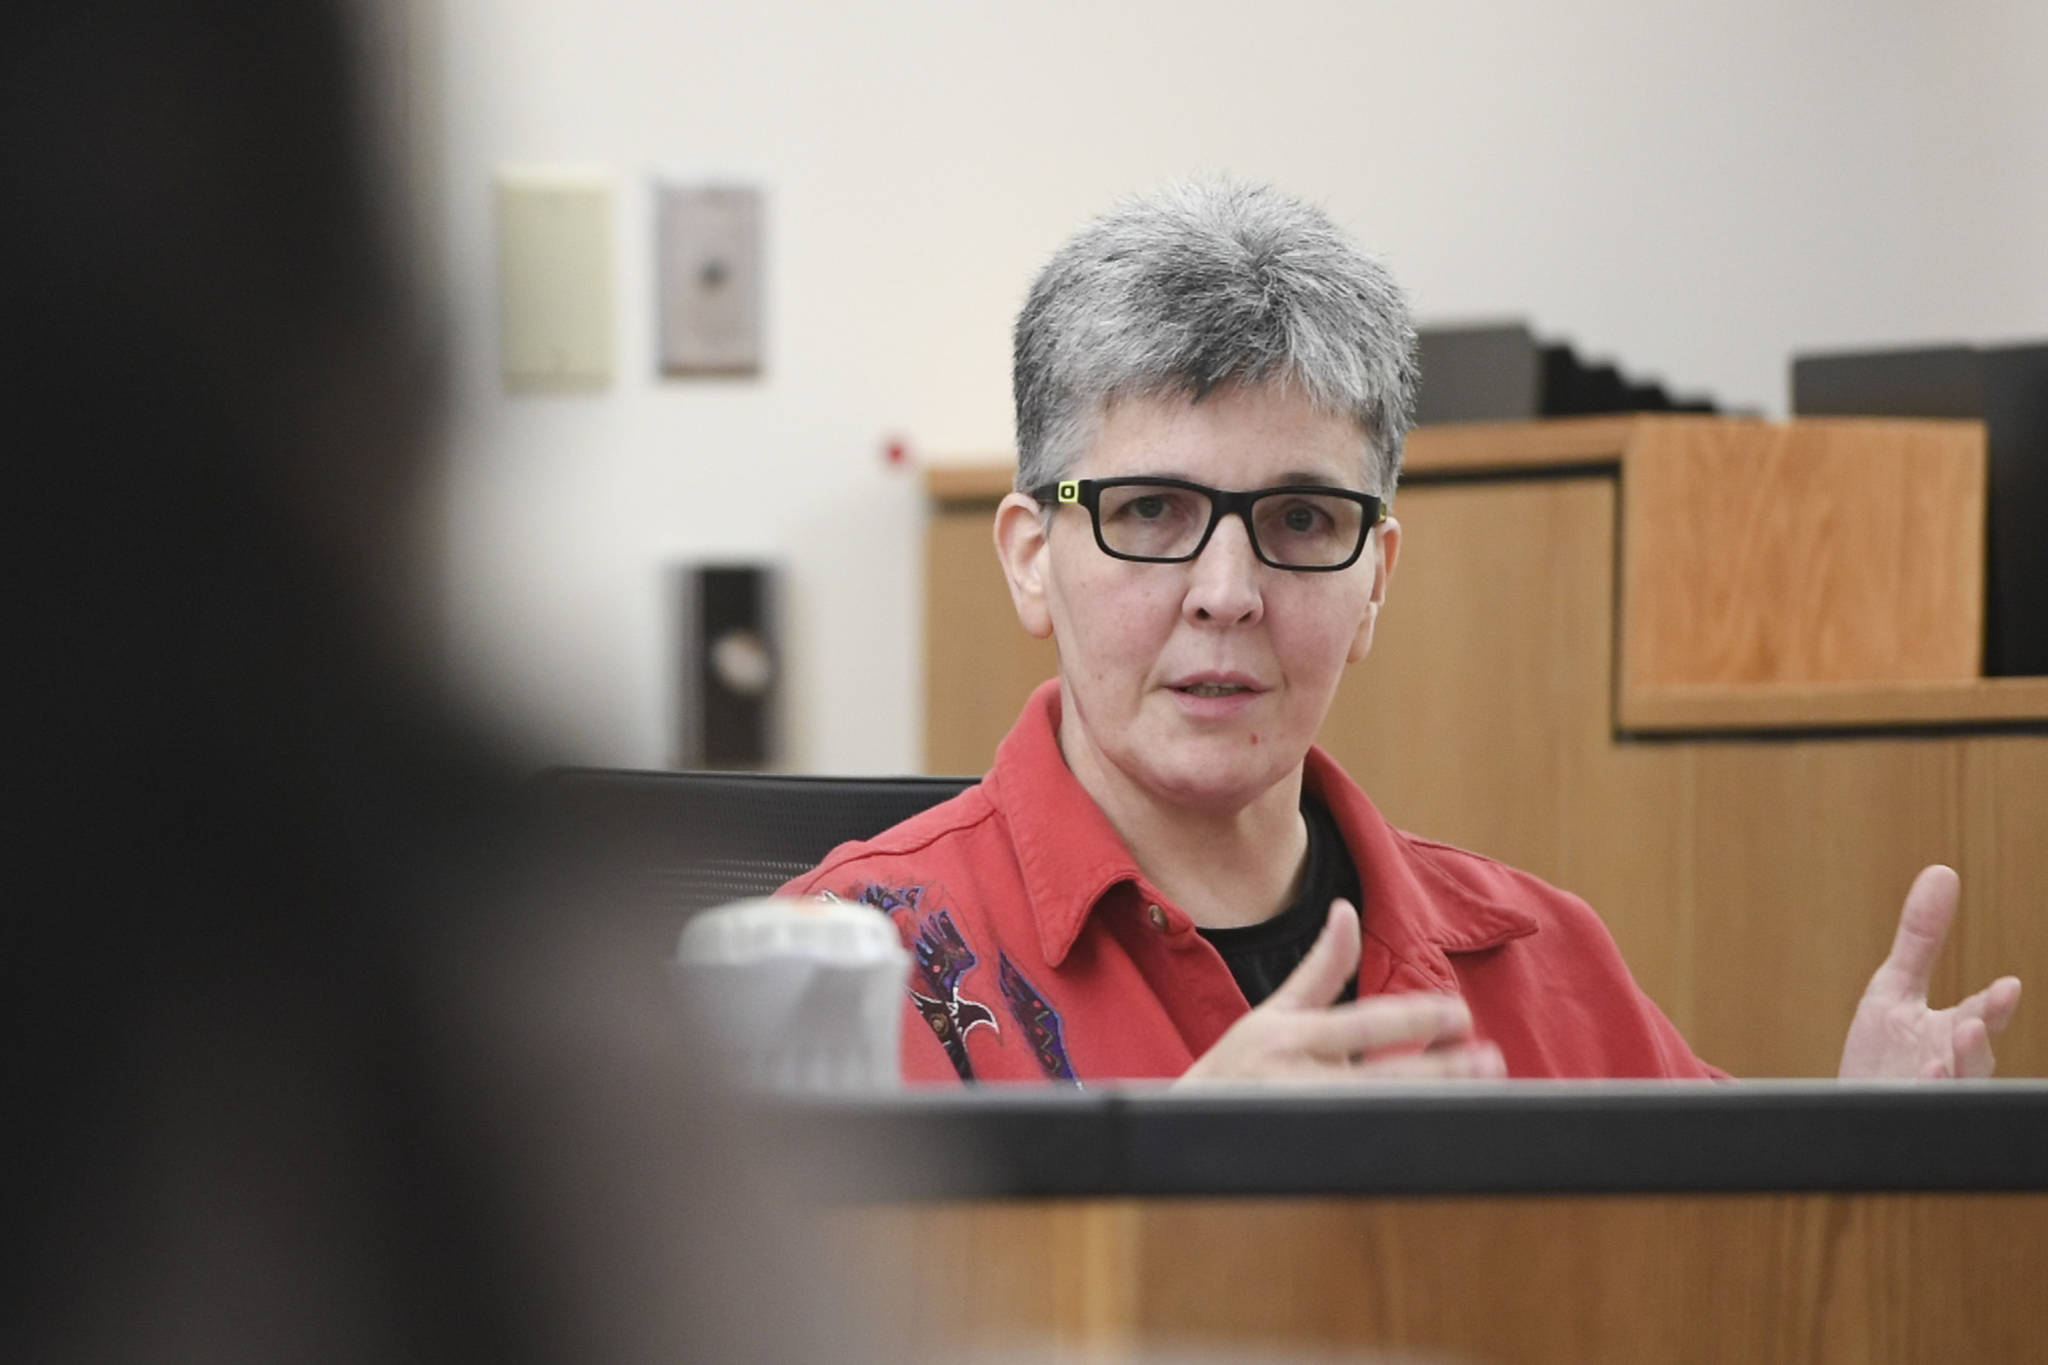 Regan Tweedy, mother of James LeBlanc-Tweedy, answers questions on the witness stand to questioning by defense attorney Natasha Norris in Juneau Superior Court on Tuesday, Sept. 24, 2019, during the trial of Laron Carlton Graham. Graham is facing two counts of first-degree murder for the November 2015 shooting deaths of 36-year-old Robert H. Meireis and 34-year-old Elizabeth K. Tonsmeire. (Michael Penn | Juneau Empire)